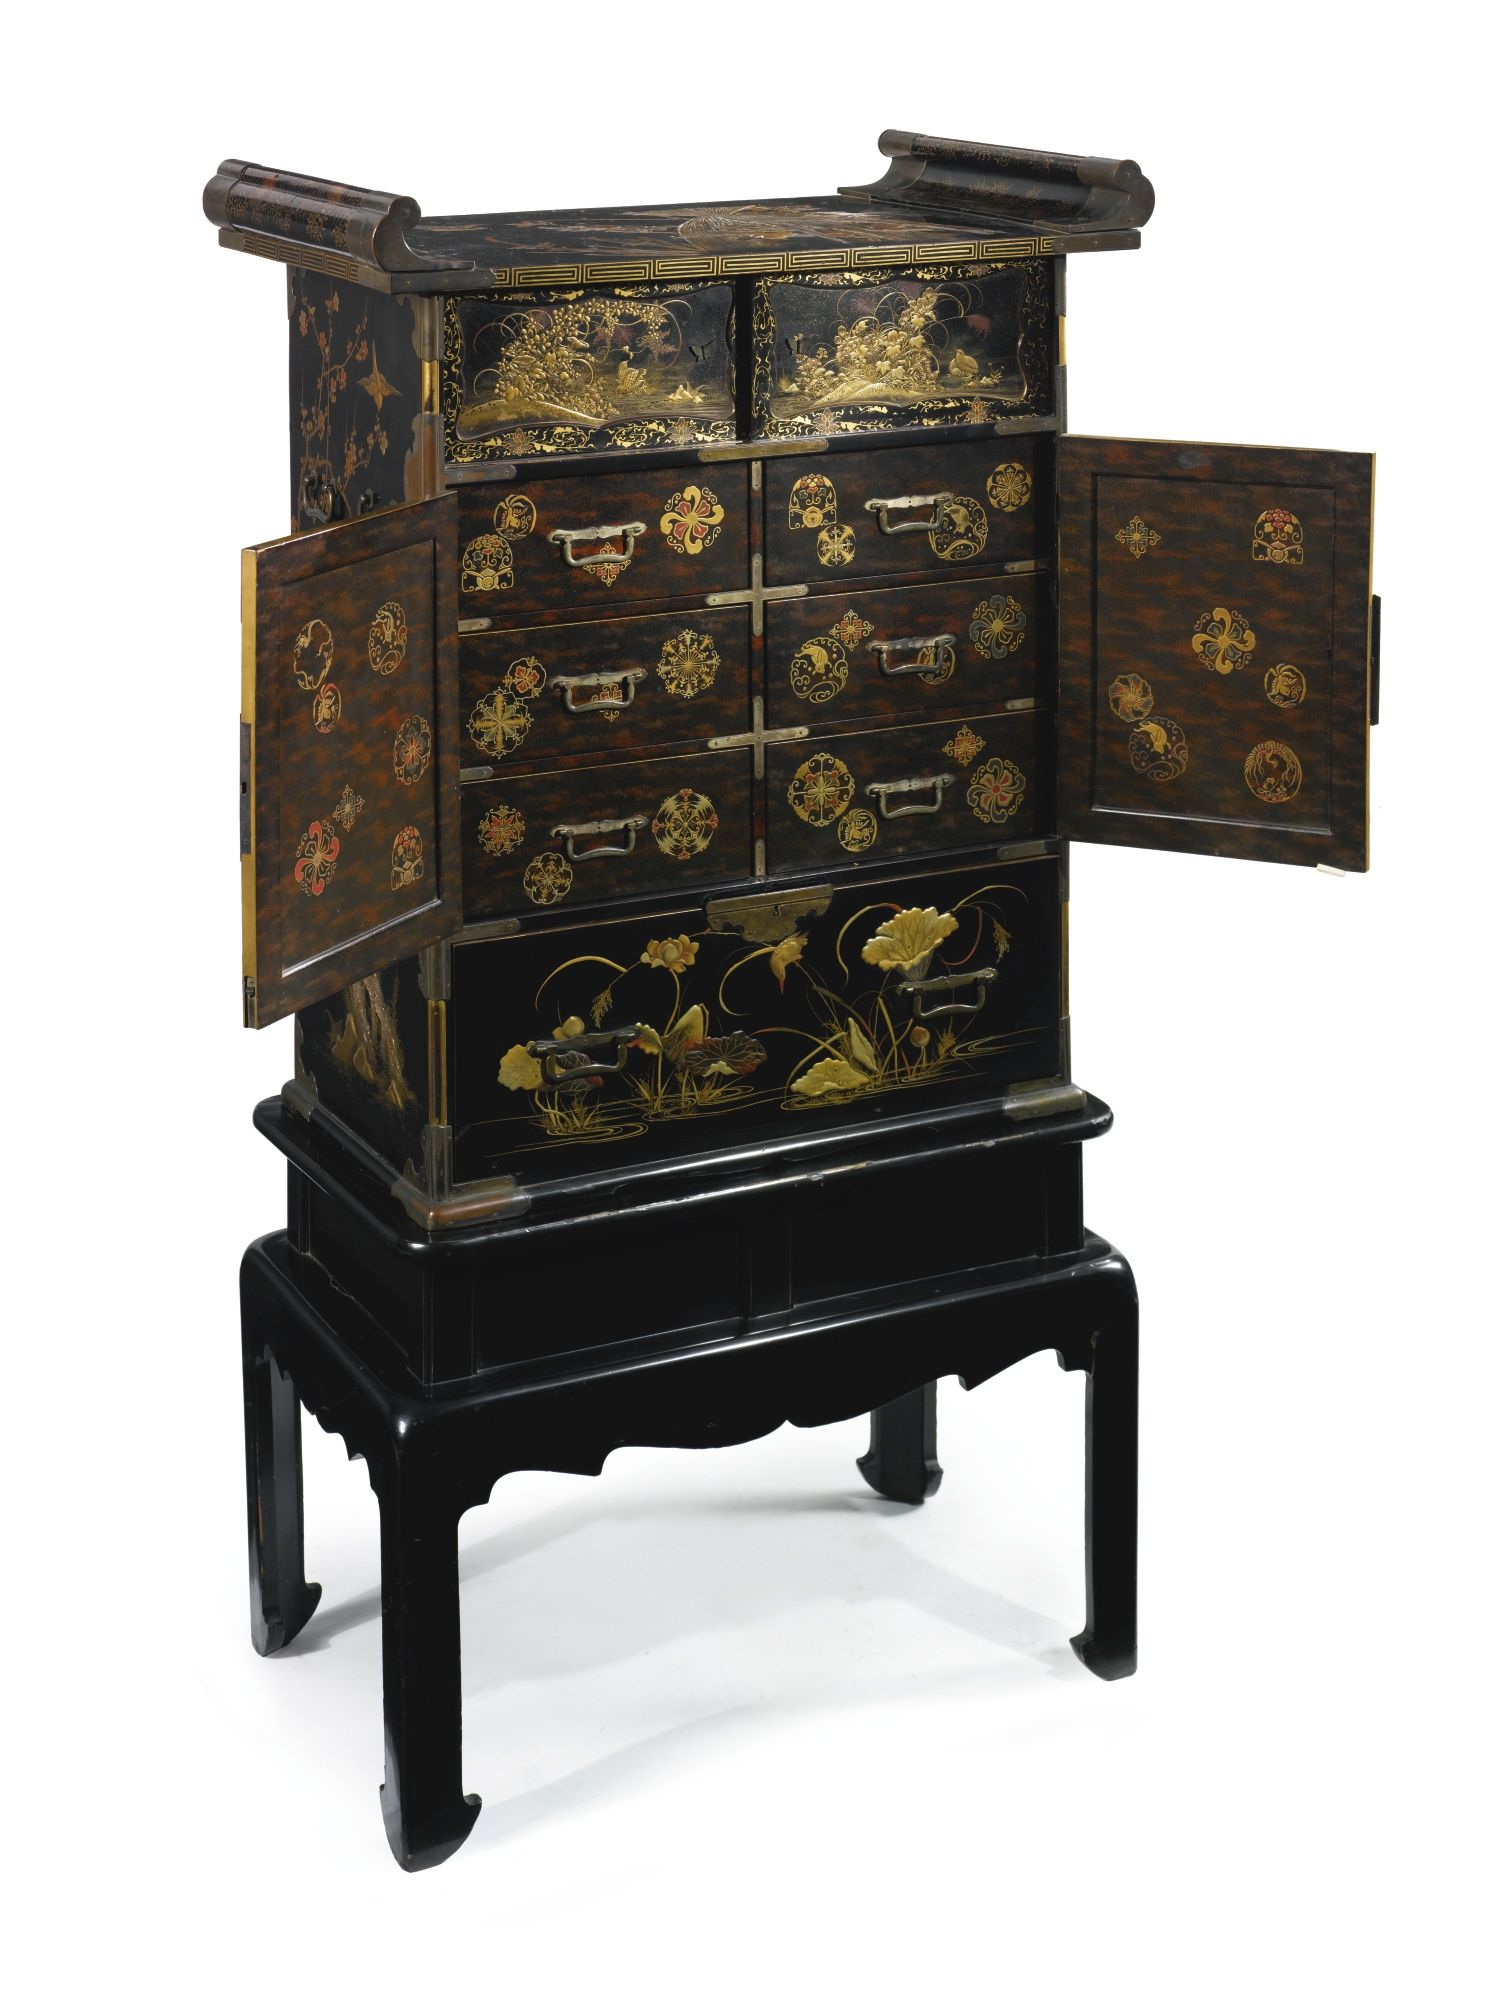 Meubles Chinois Et Japonais a japanese parcel-gilt black and red lacquer cabinet on